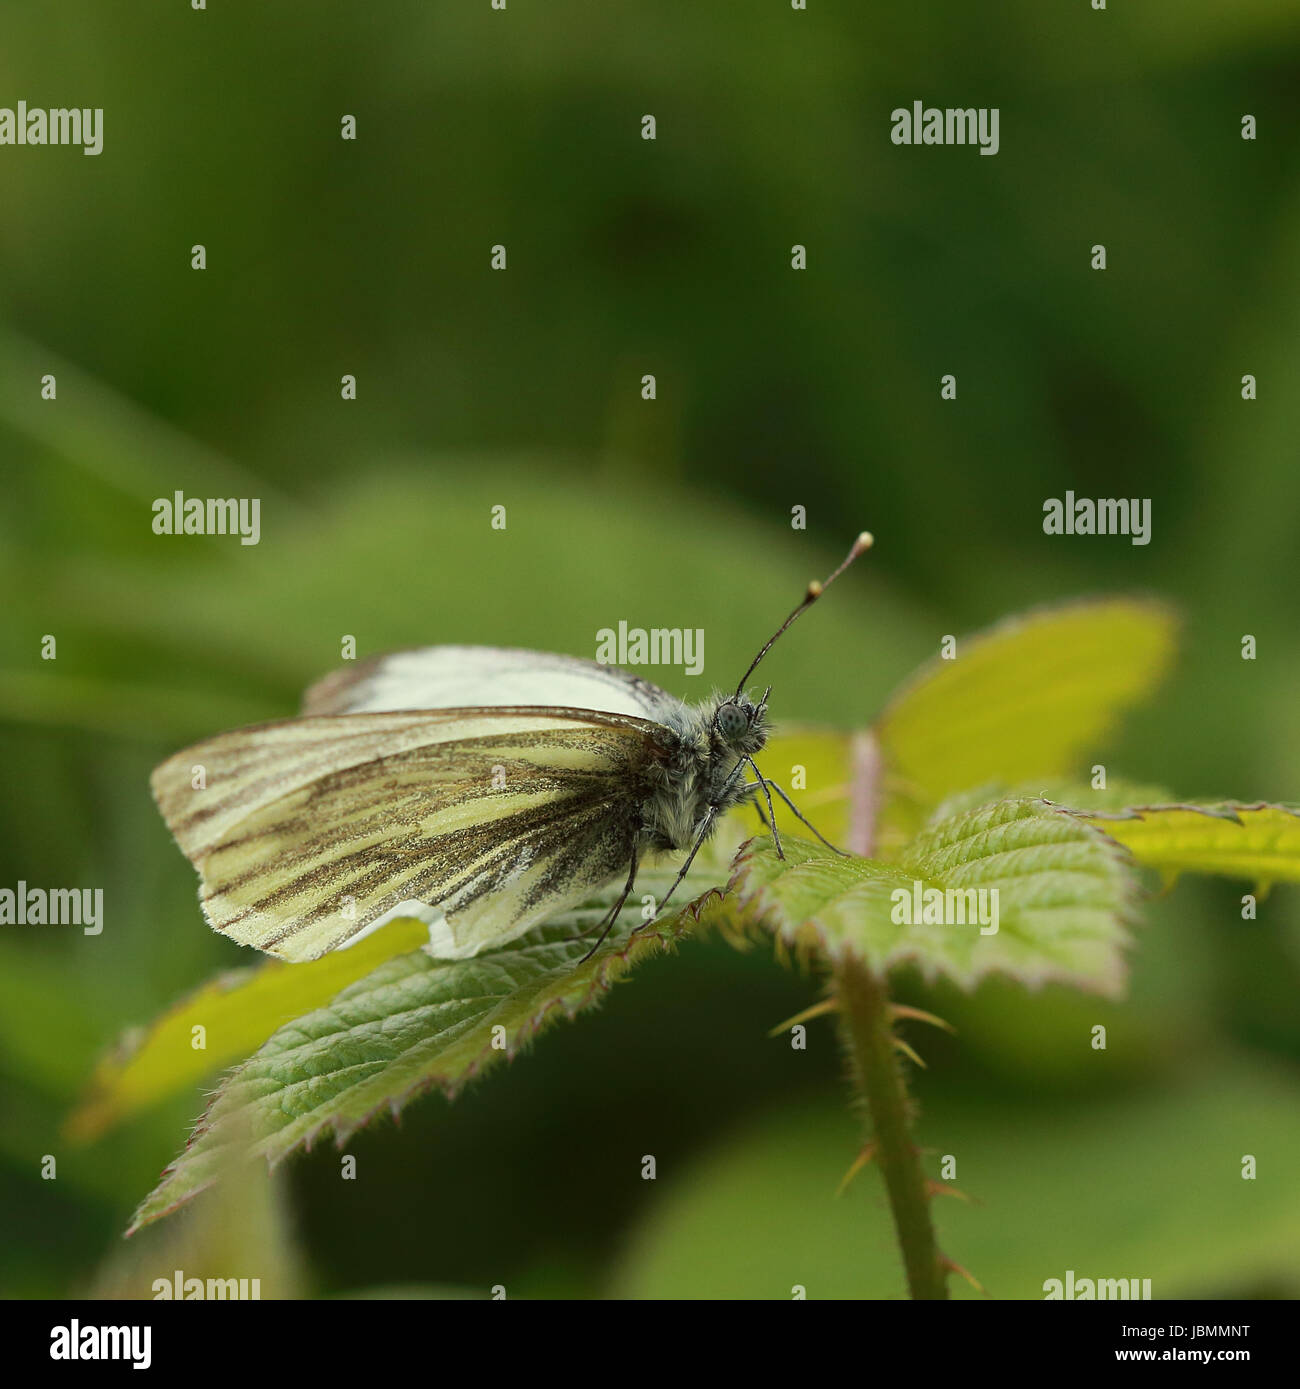 A beautiful Small White Butterfly perched - Stock Image